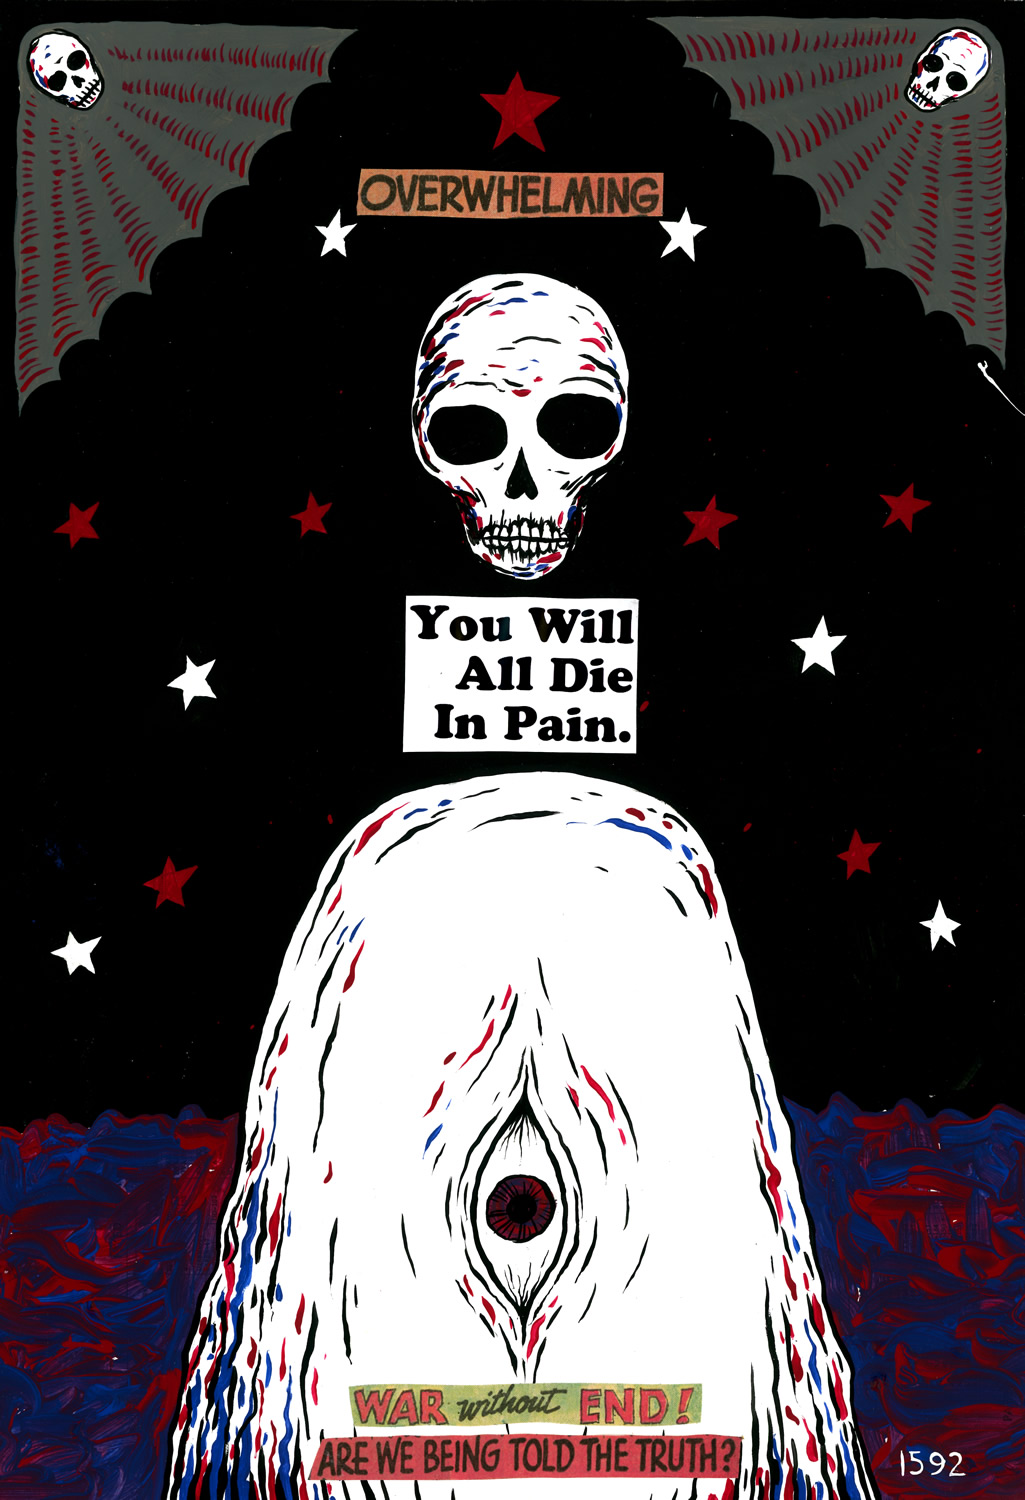 OVERWHELMING / You Will All Die In Pain.